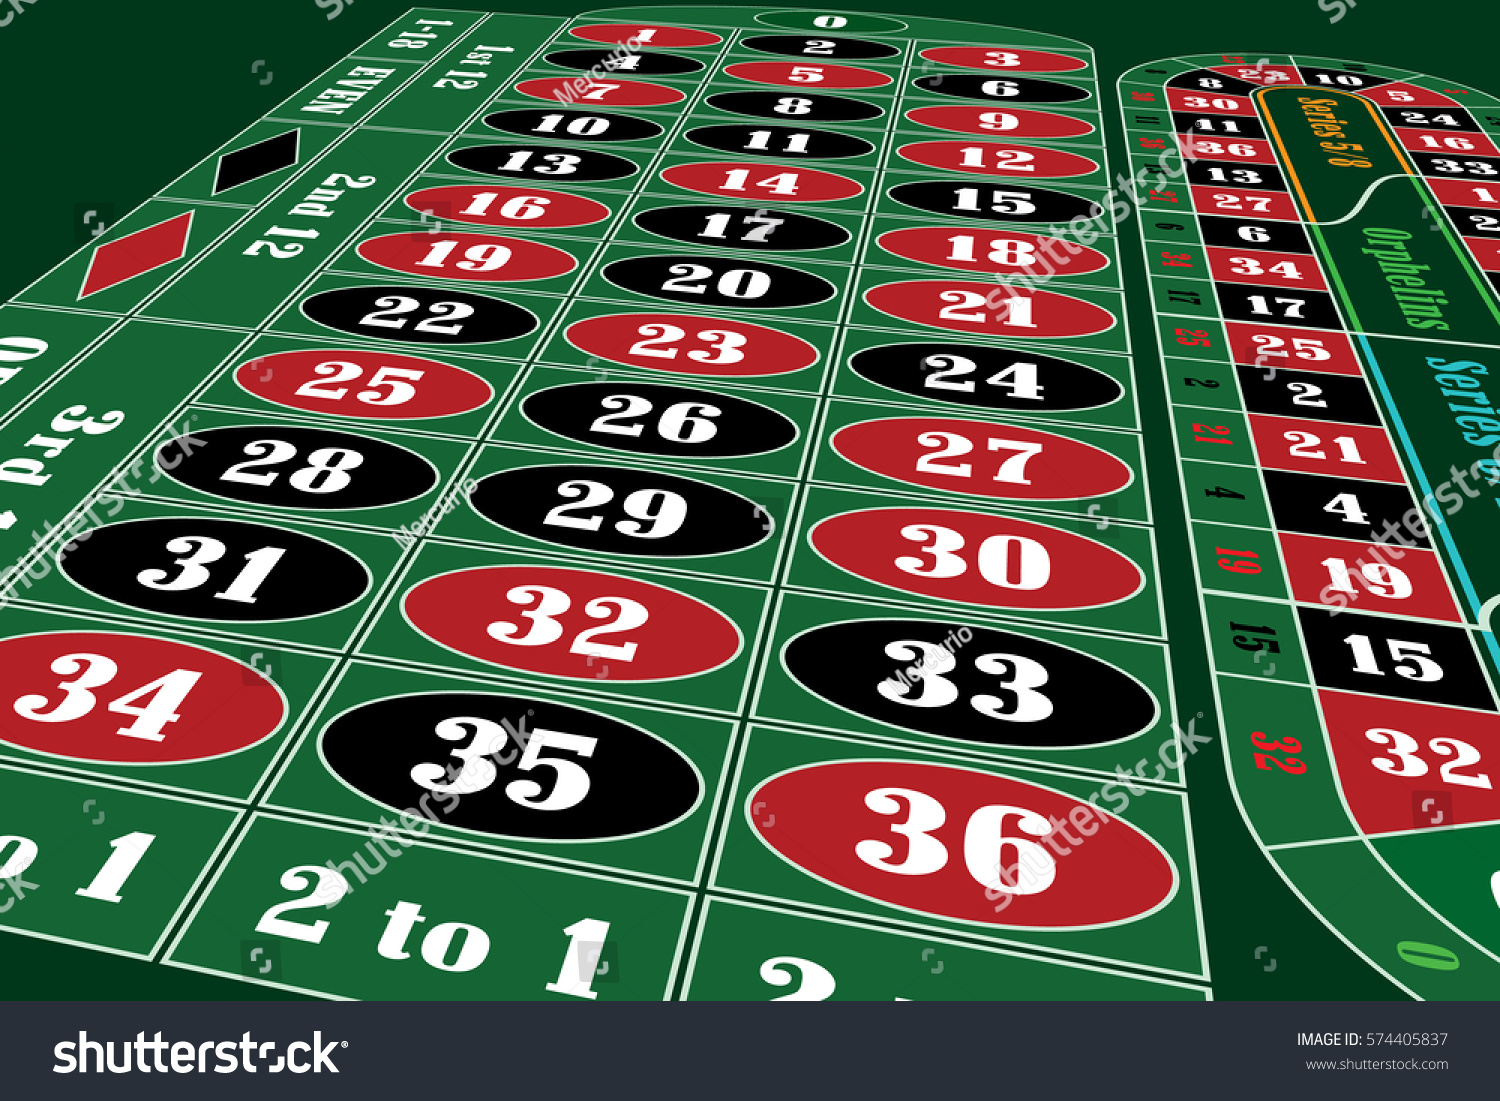 Traditional european roulette table vector illustration stock vector - Traditional European Roulette Table Perspective Vector Illustration